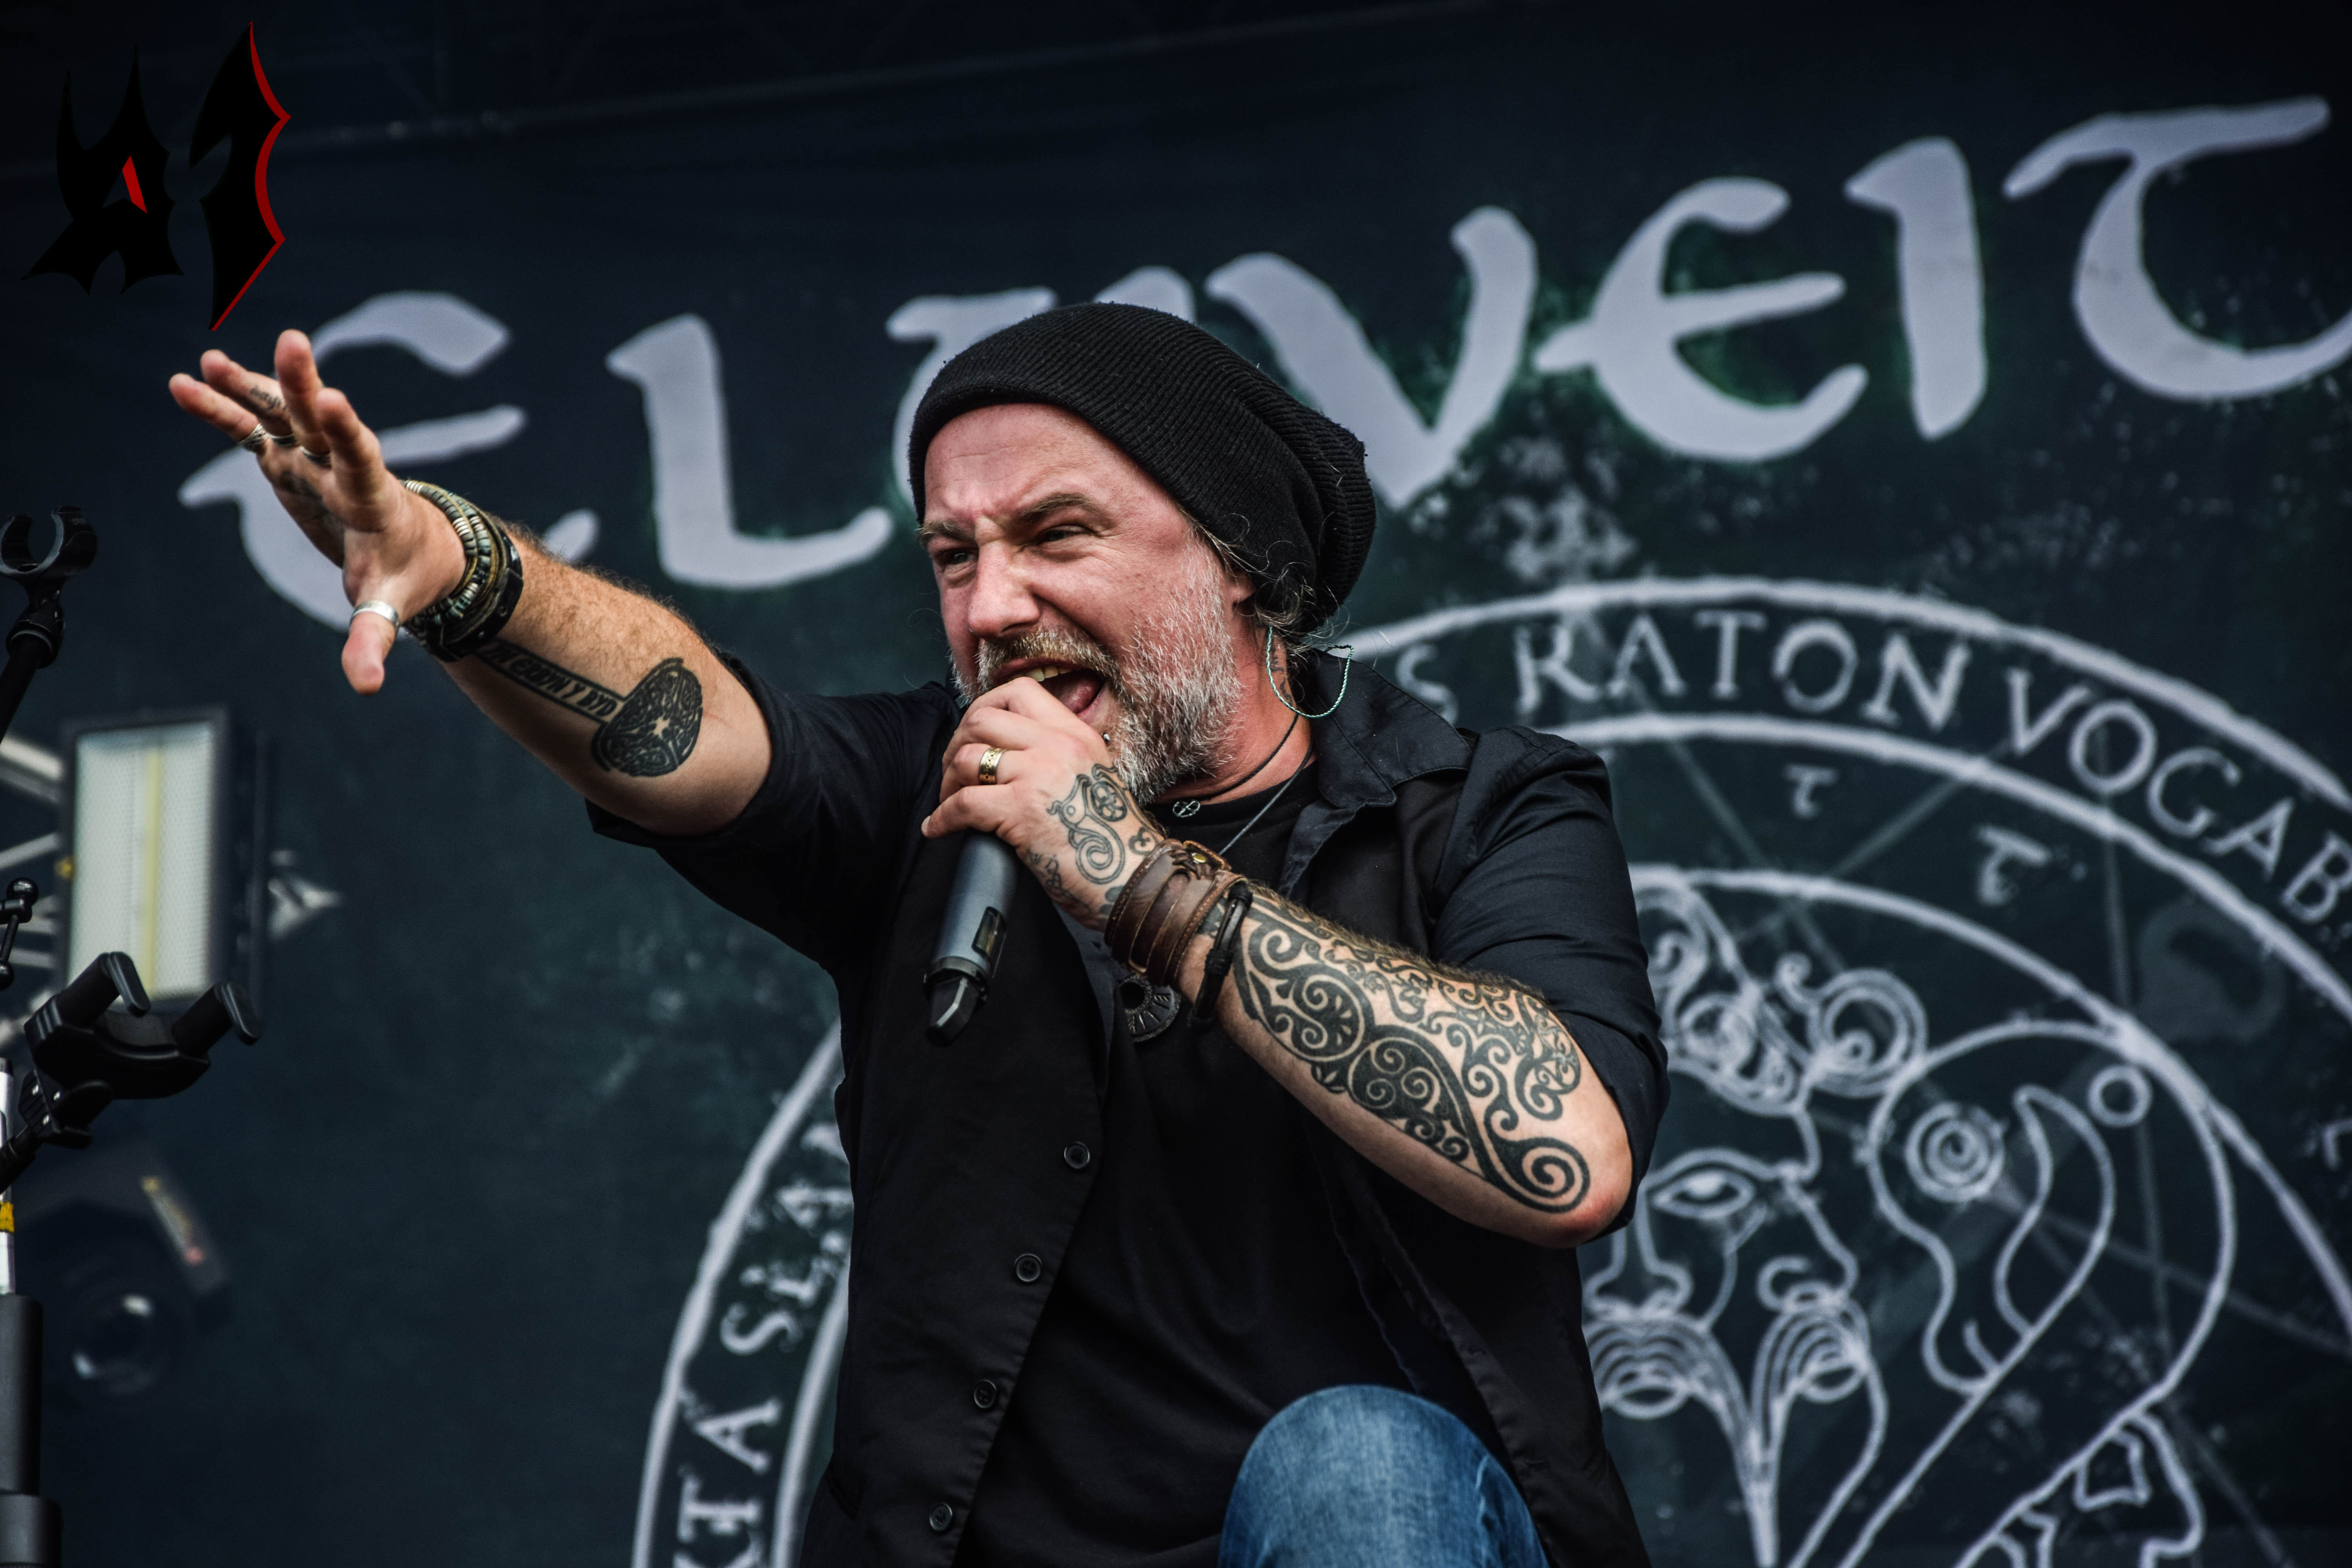 Donwload 2018 – Day 1 - Eluveitie 14